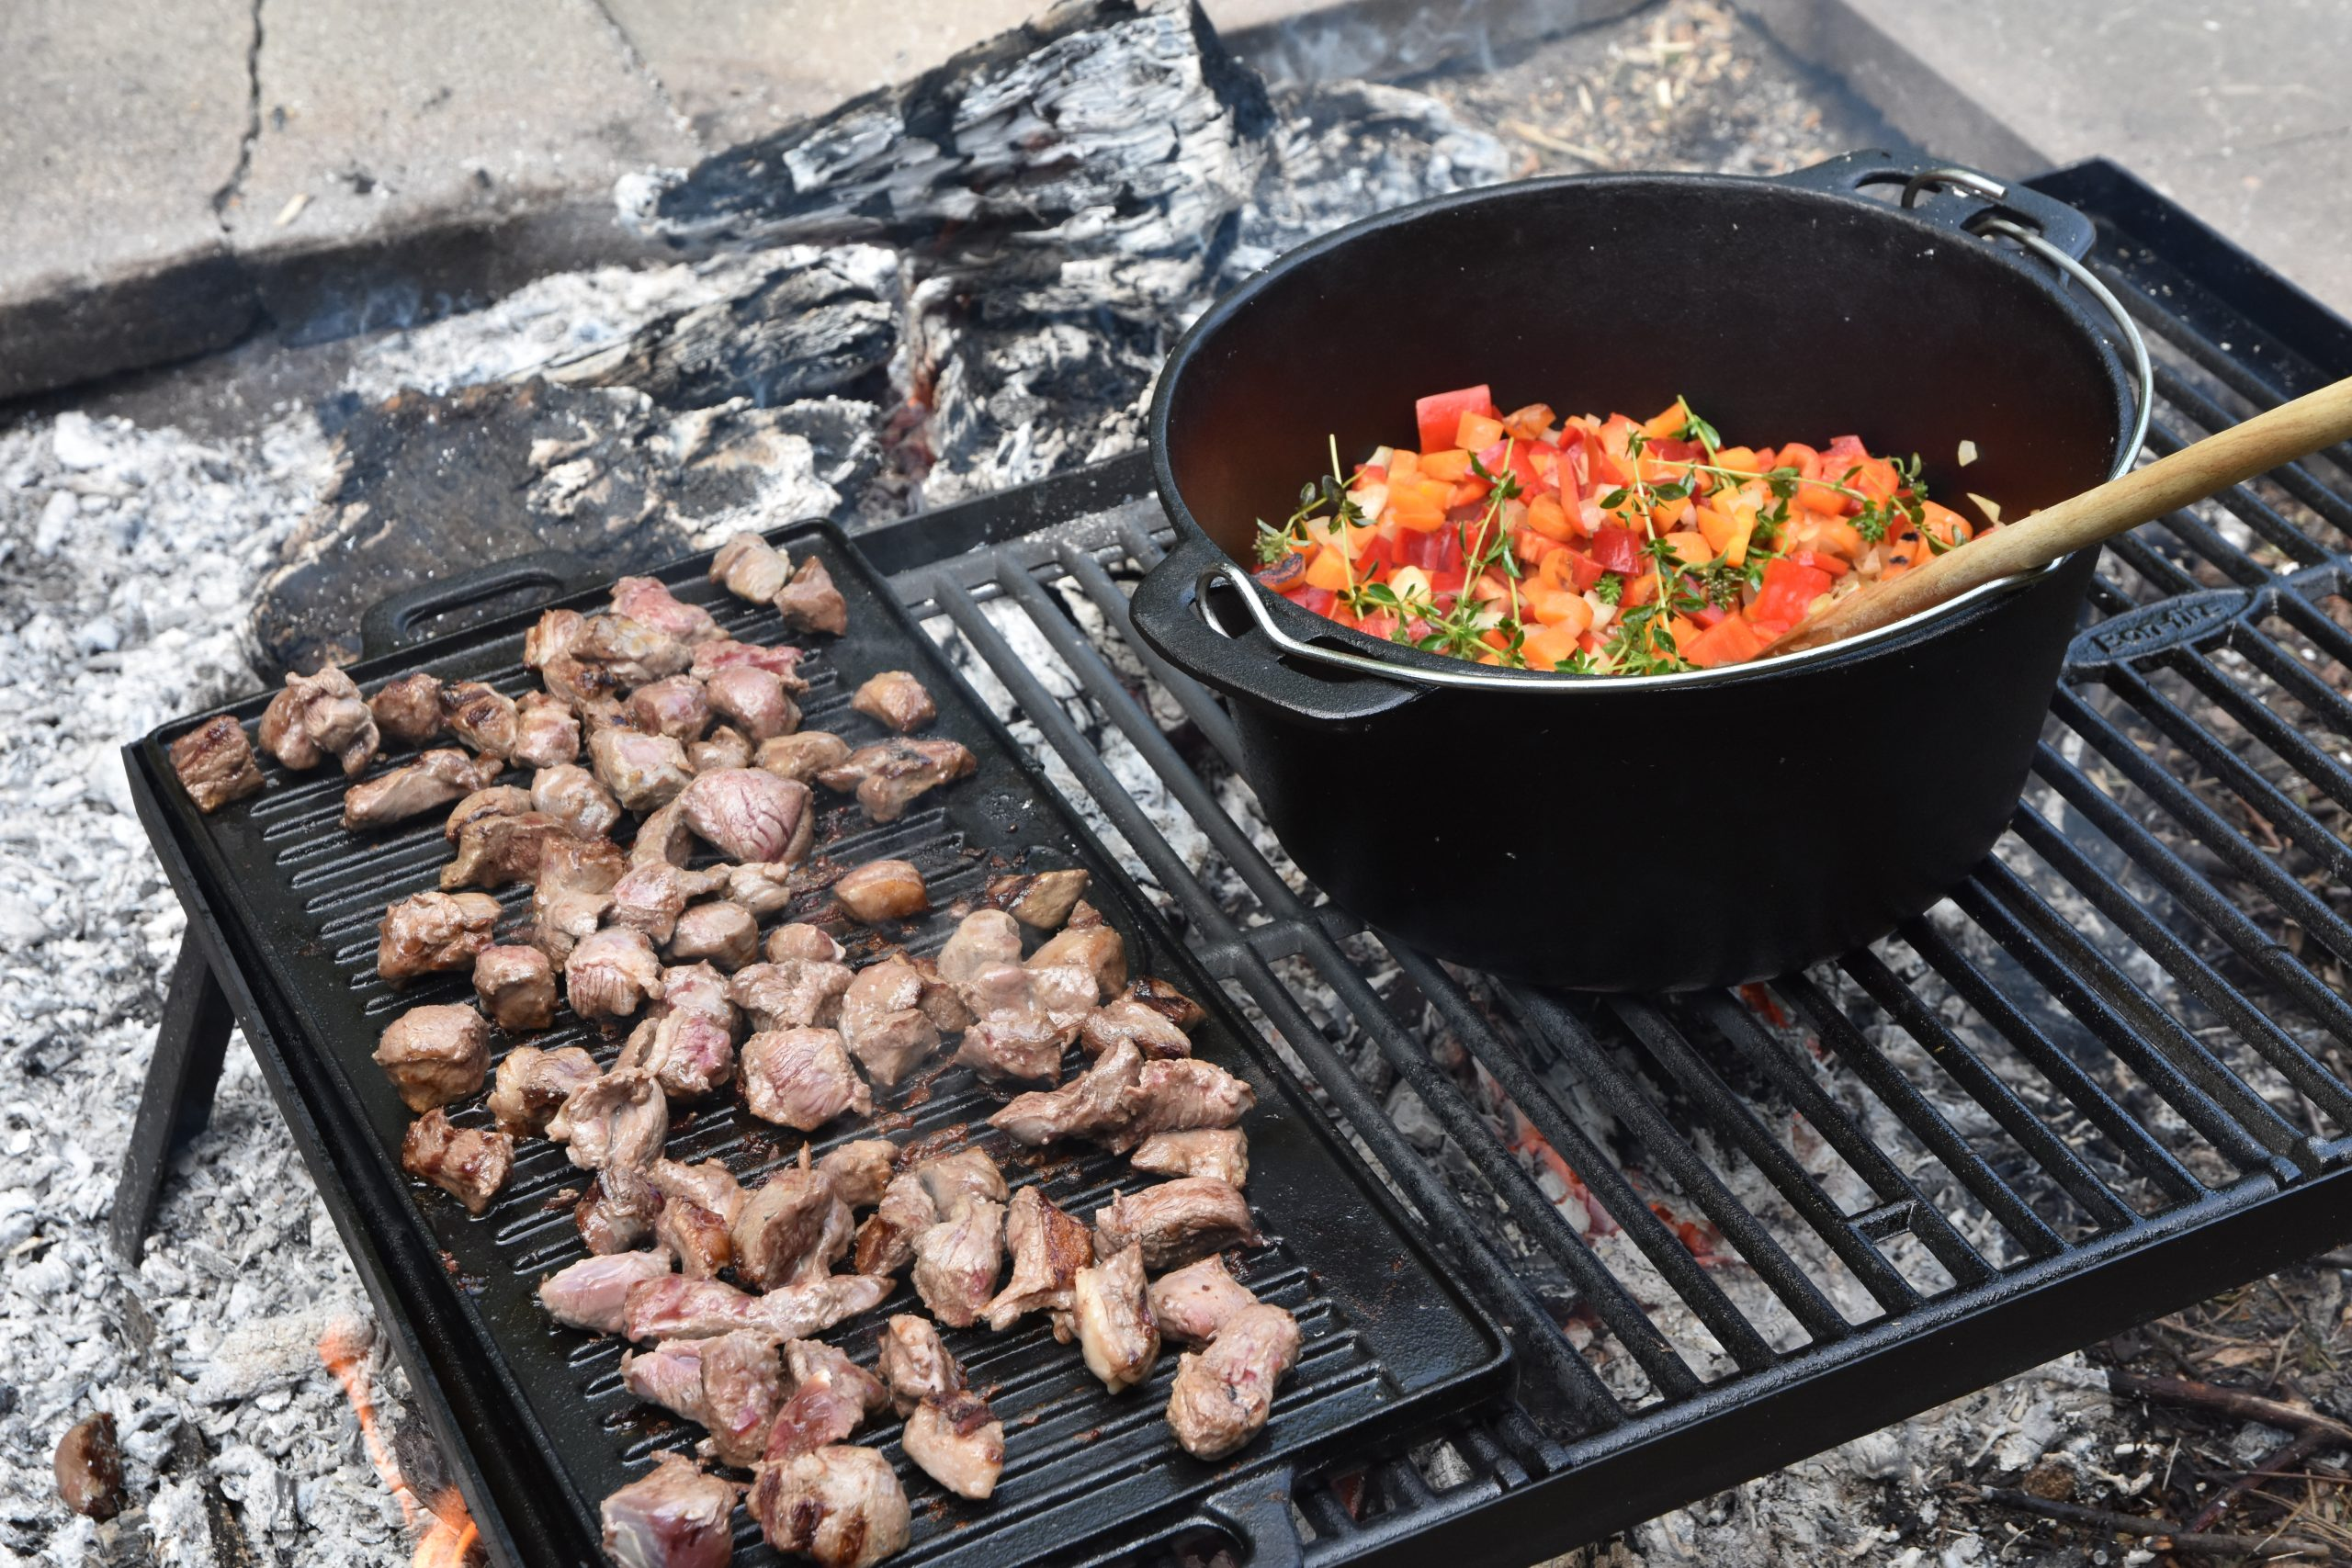 Bon-fire Grill with reversible Griddle and Stew pot. All in cast iron. Photo credit: @seatroutguidefyn